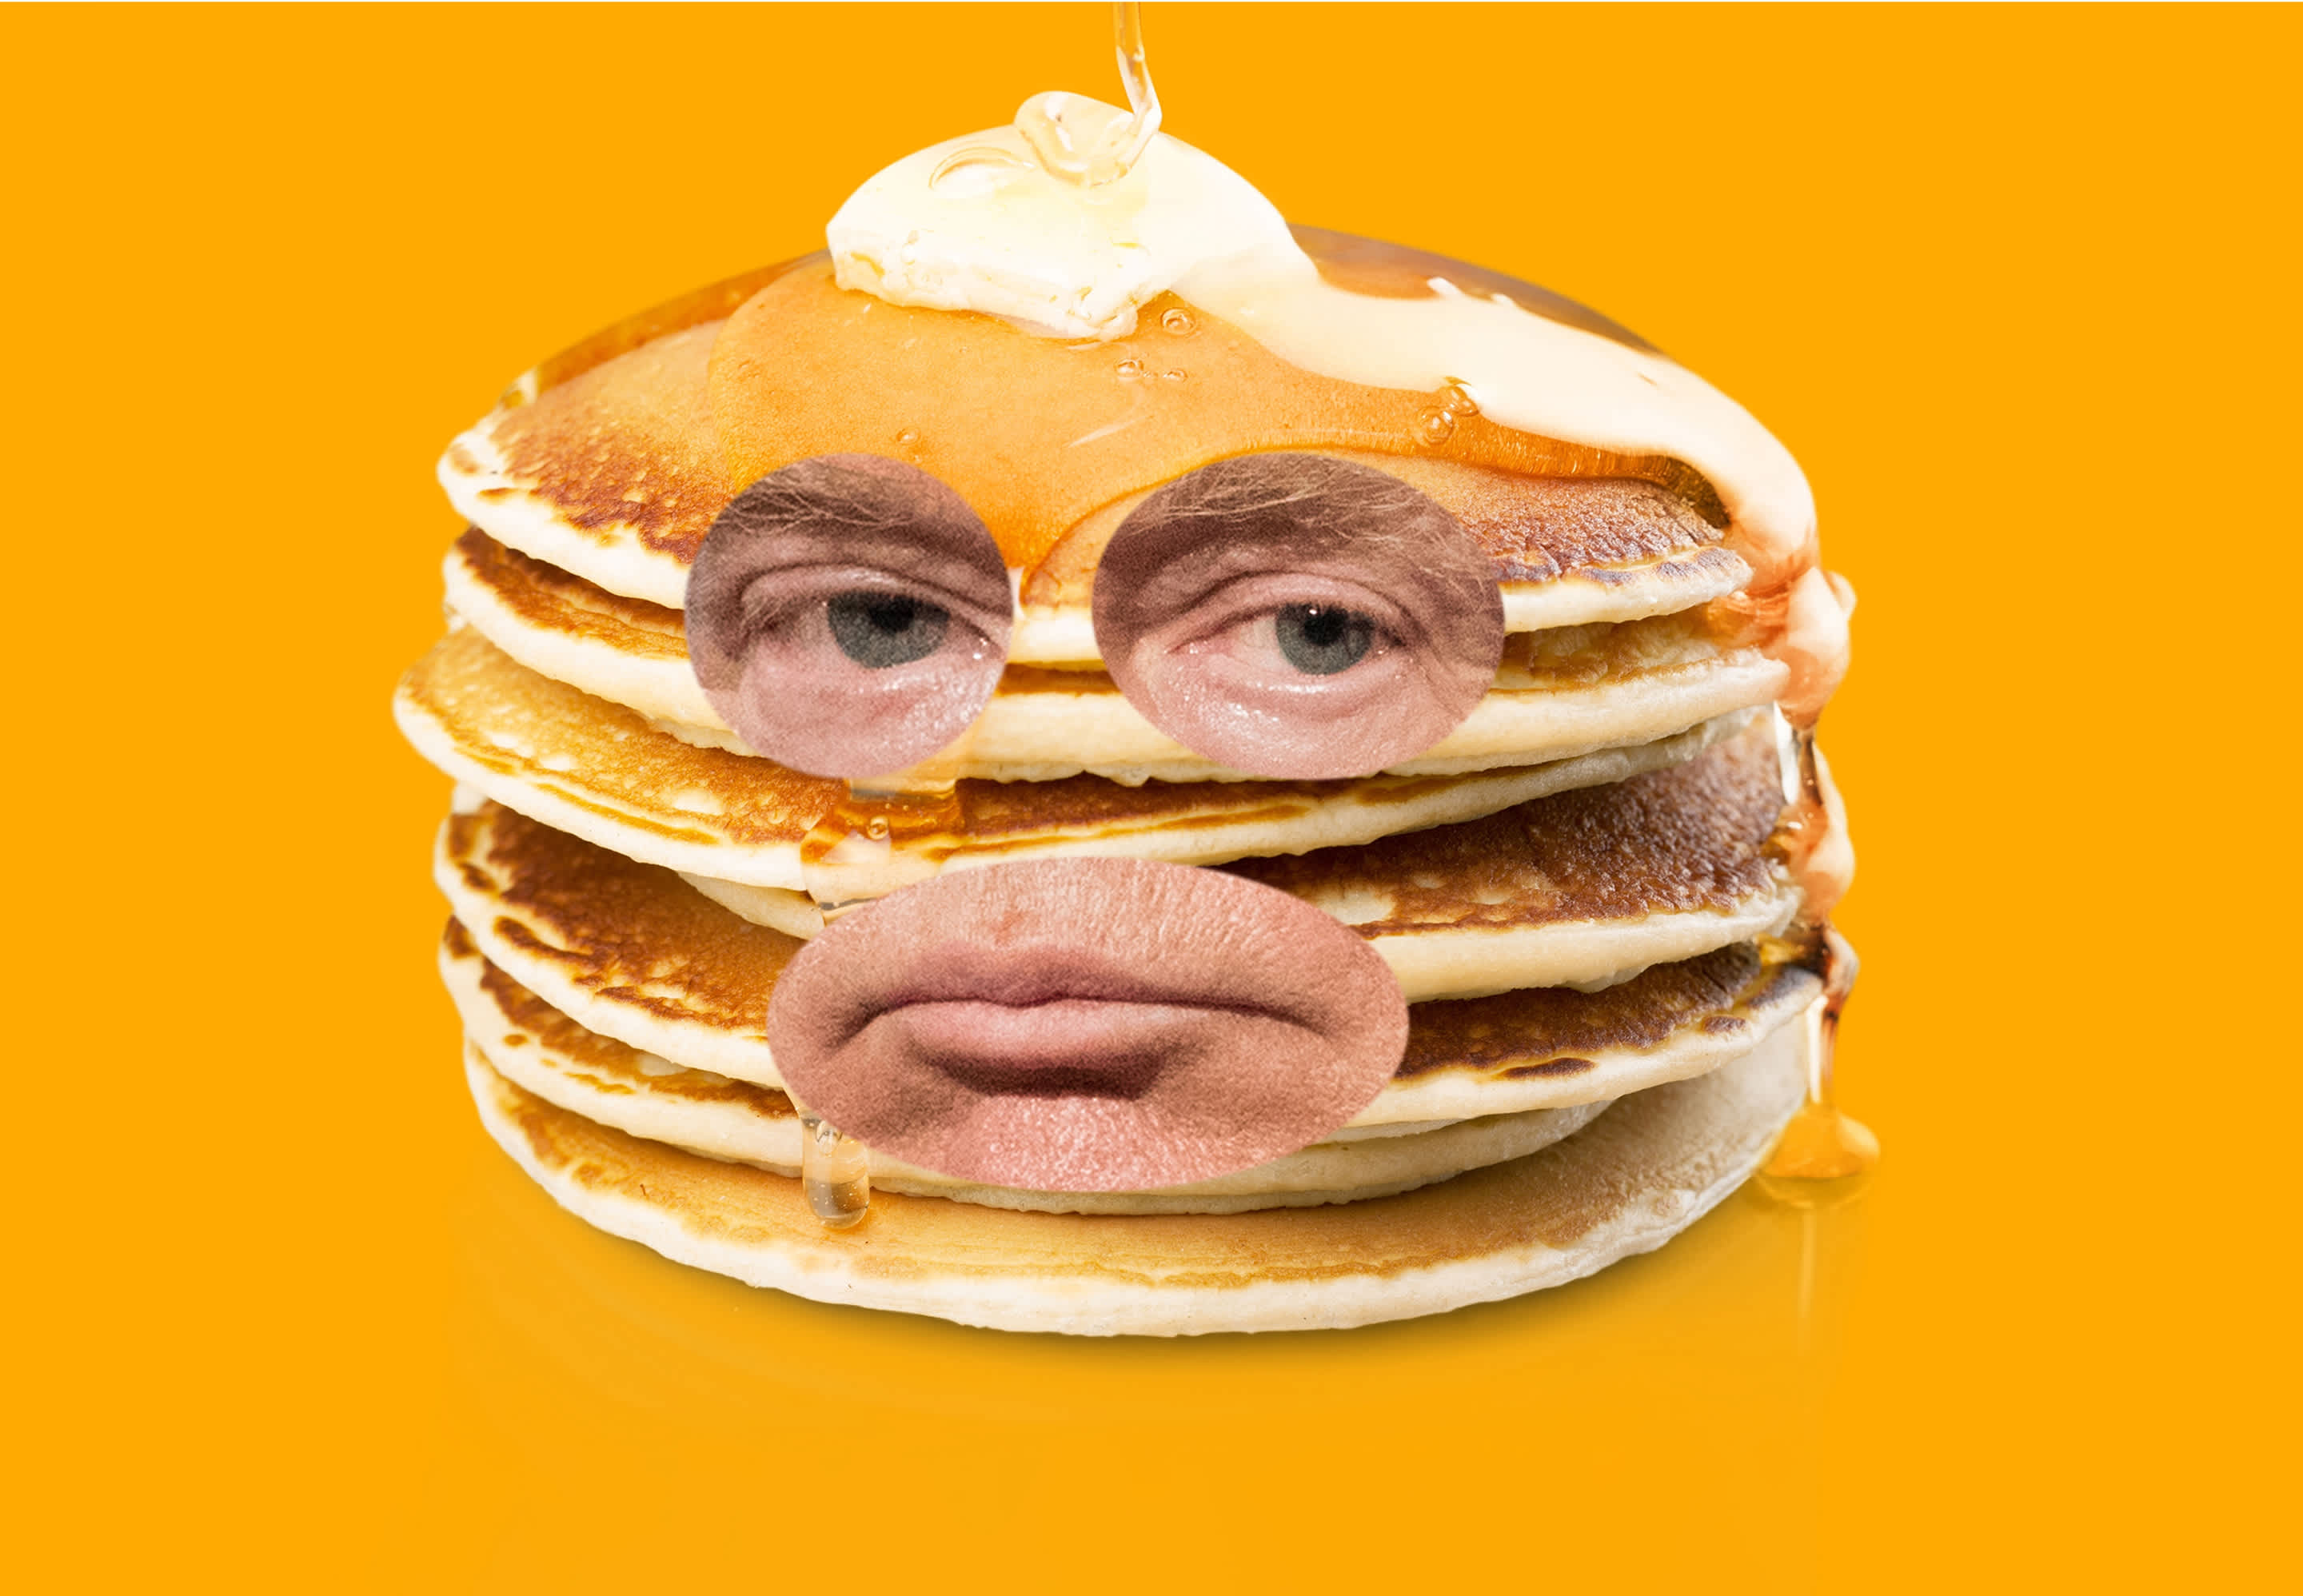 Donald Trump's face embedded in a pancake